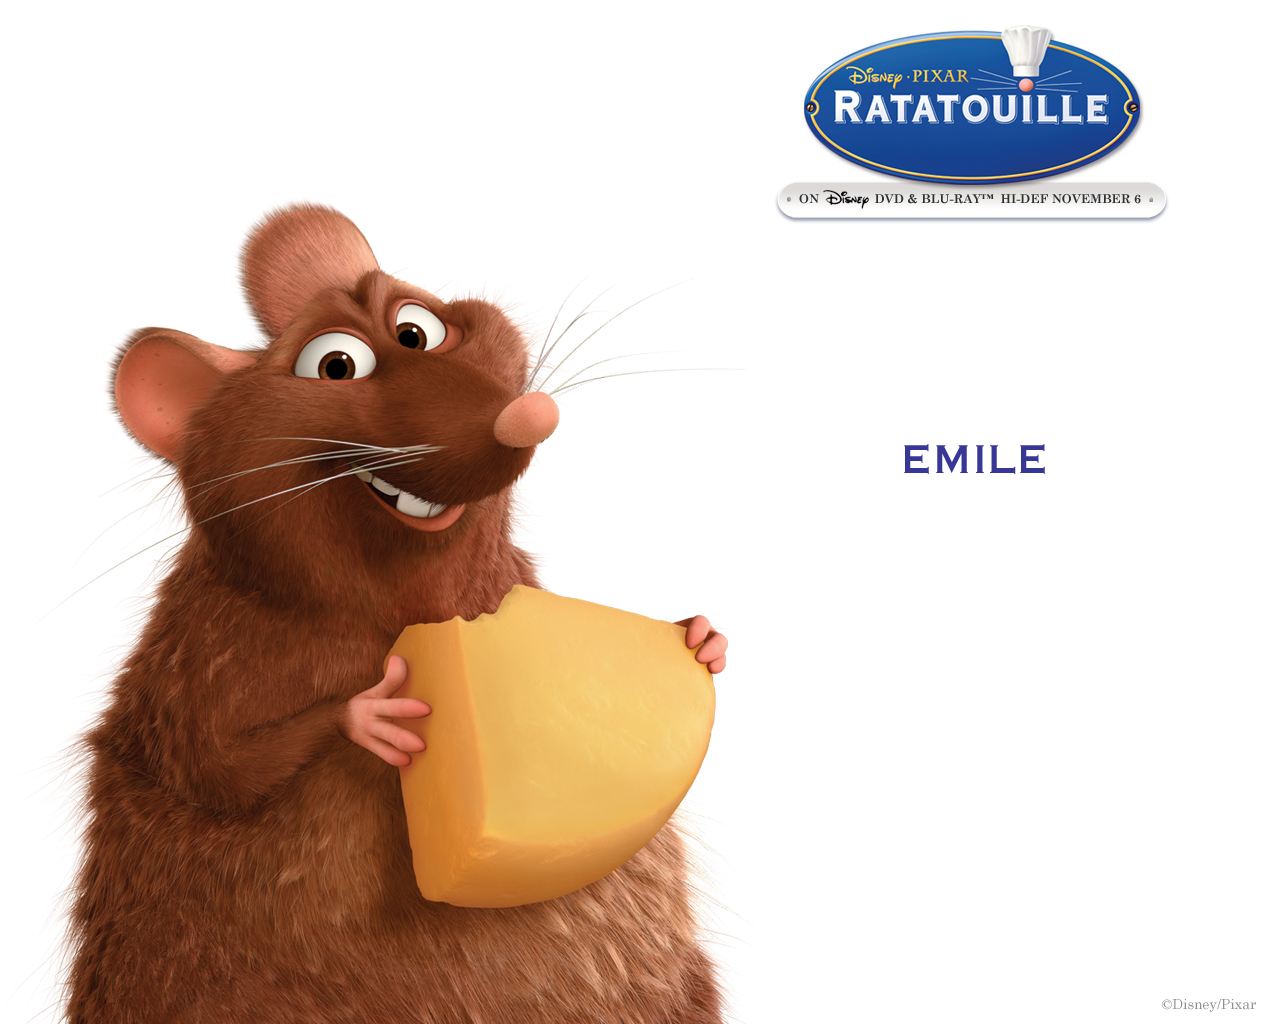 Image result for emile ratatouille